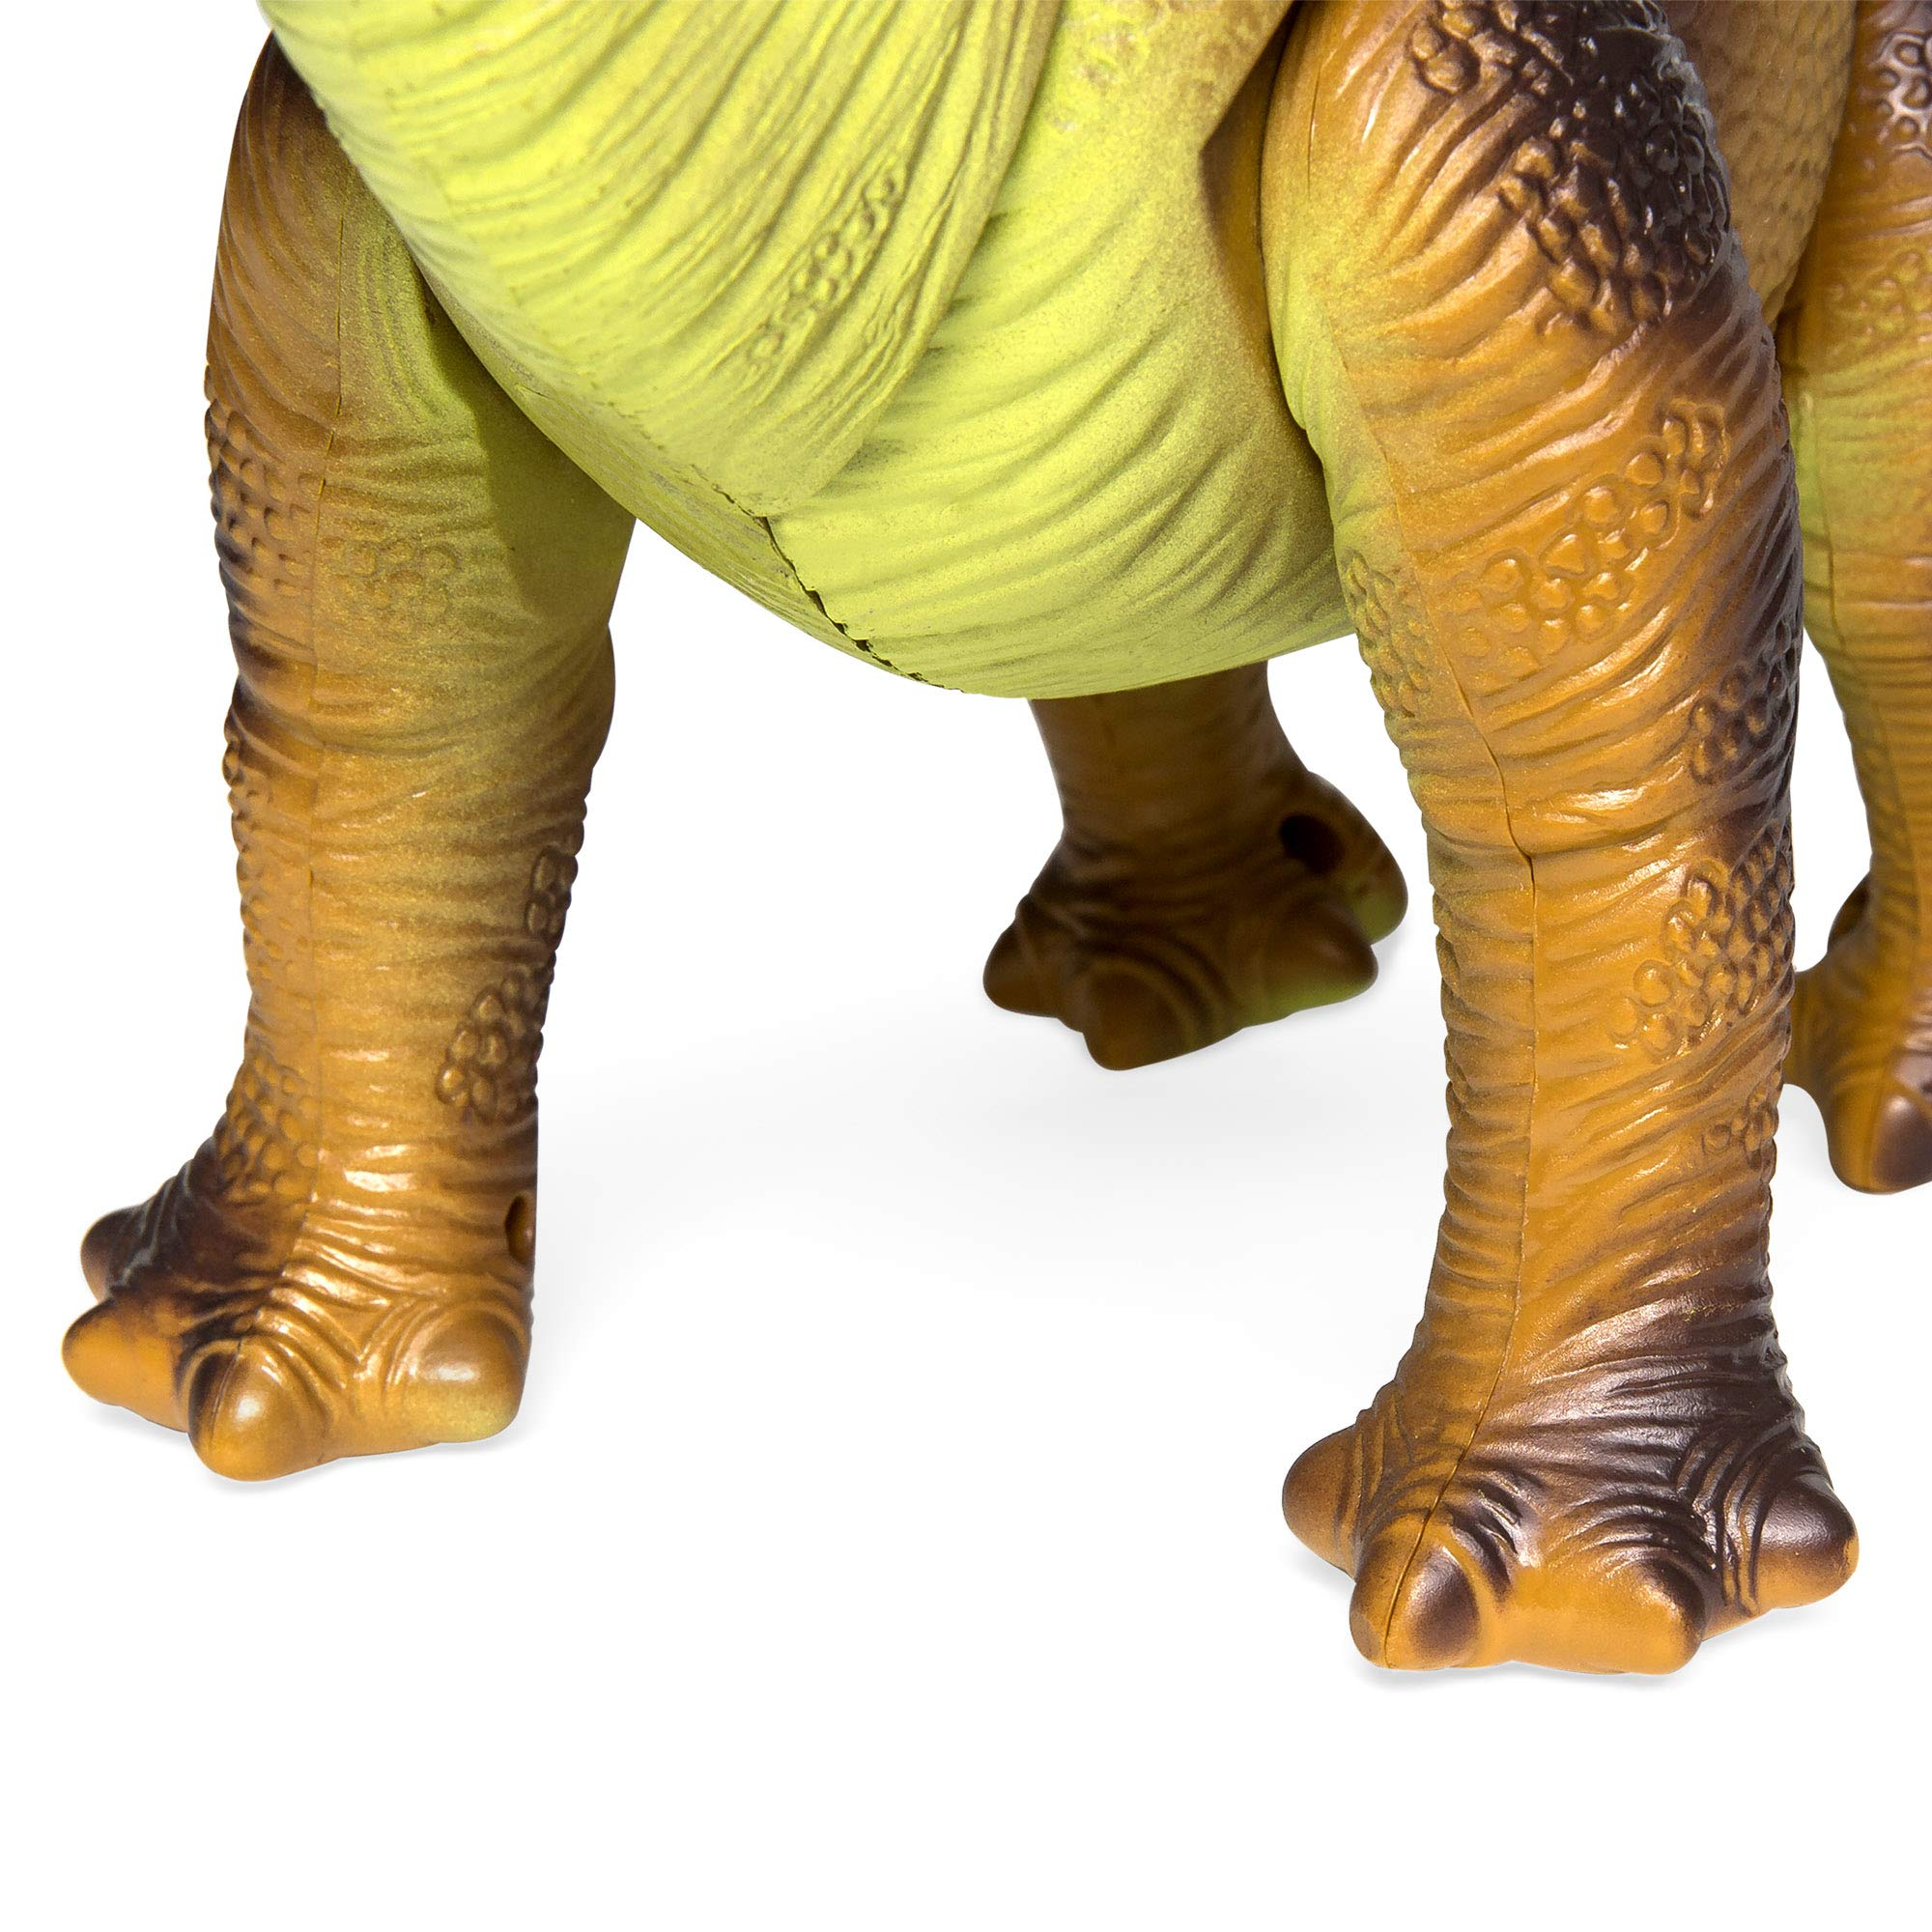 Best Choice Products 17.5in Kids RC Stomping Brachiosaurus Dinosaur Electric Animal Toy Robot w/ Light Up Eyes, Roaring Sounds, Swinging Head, Remote Control by Best Choice Products (Image #5)